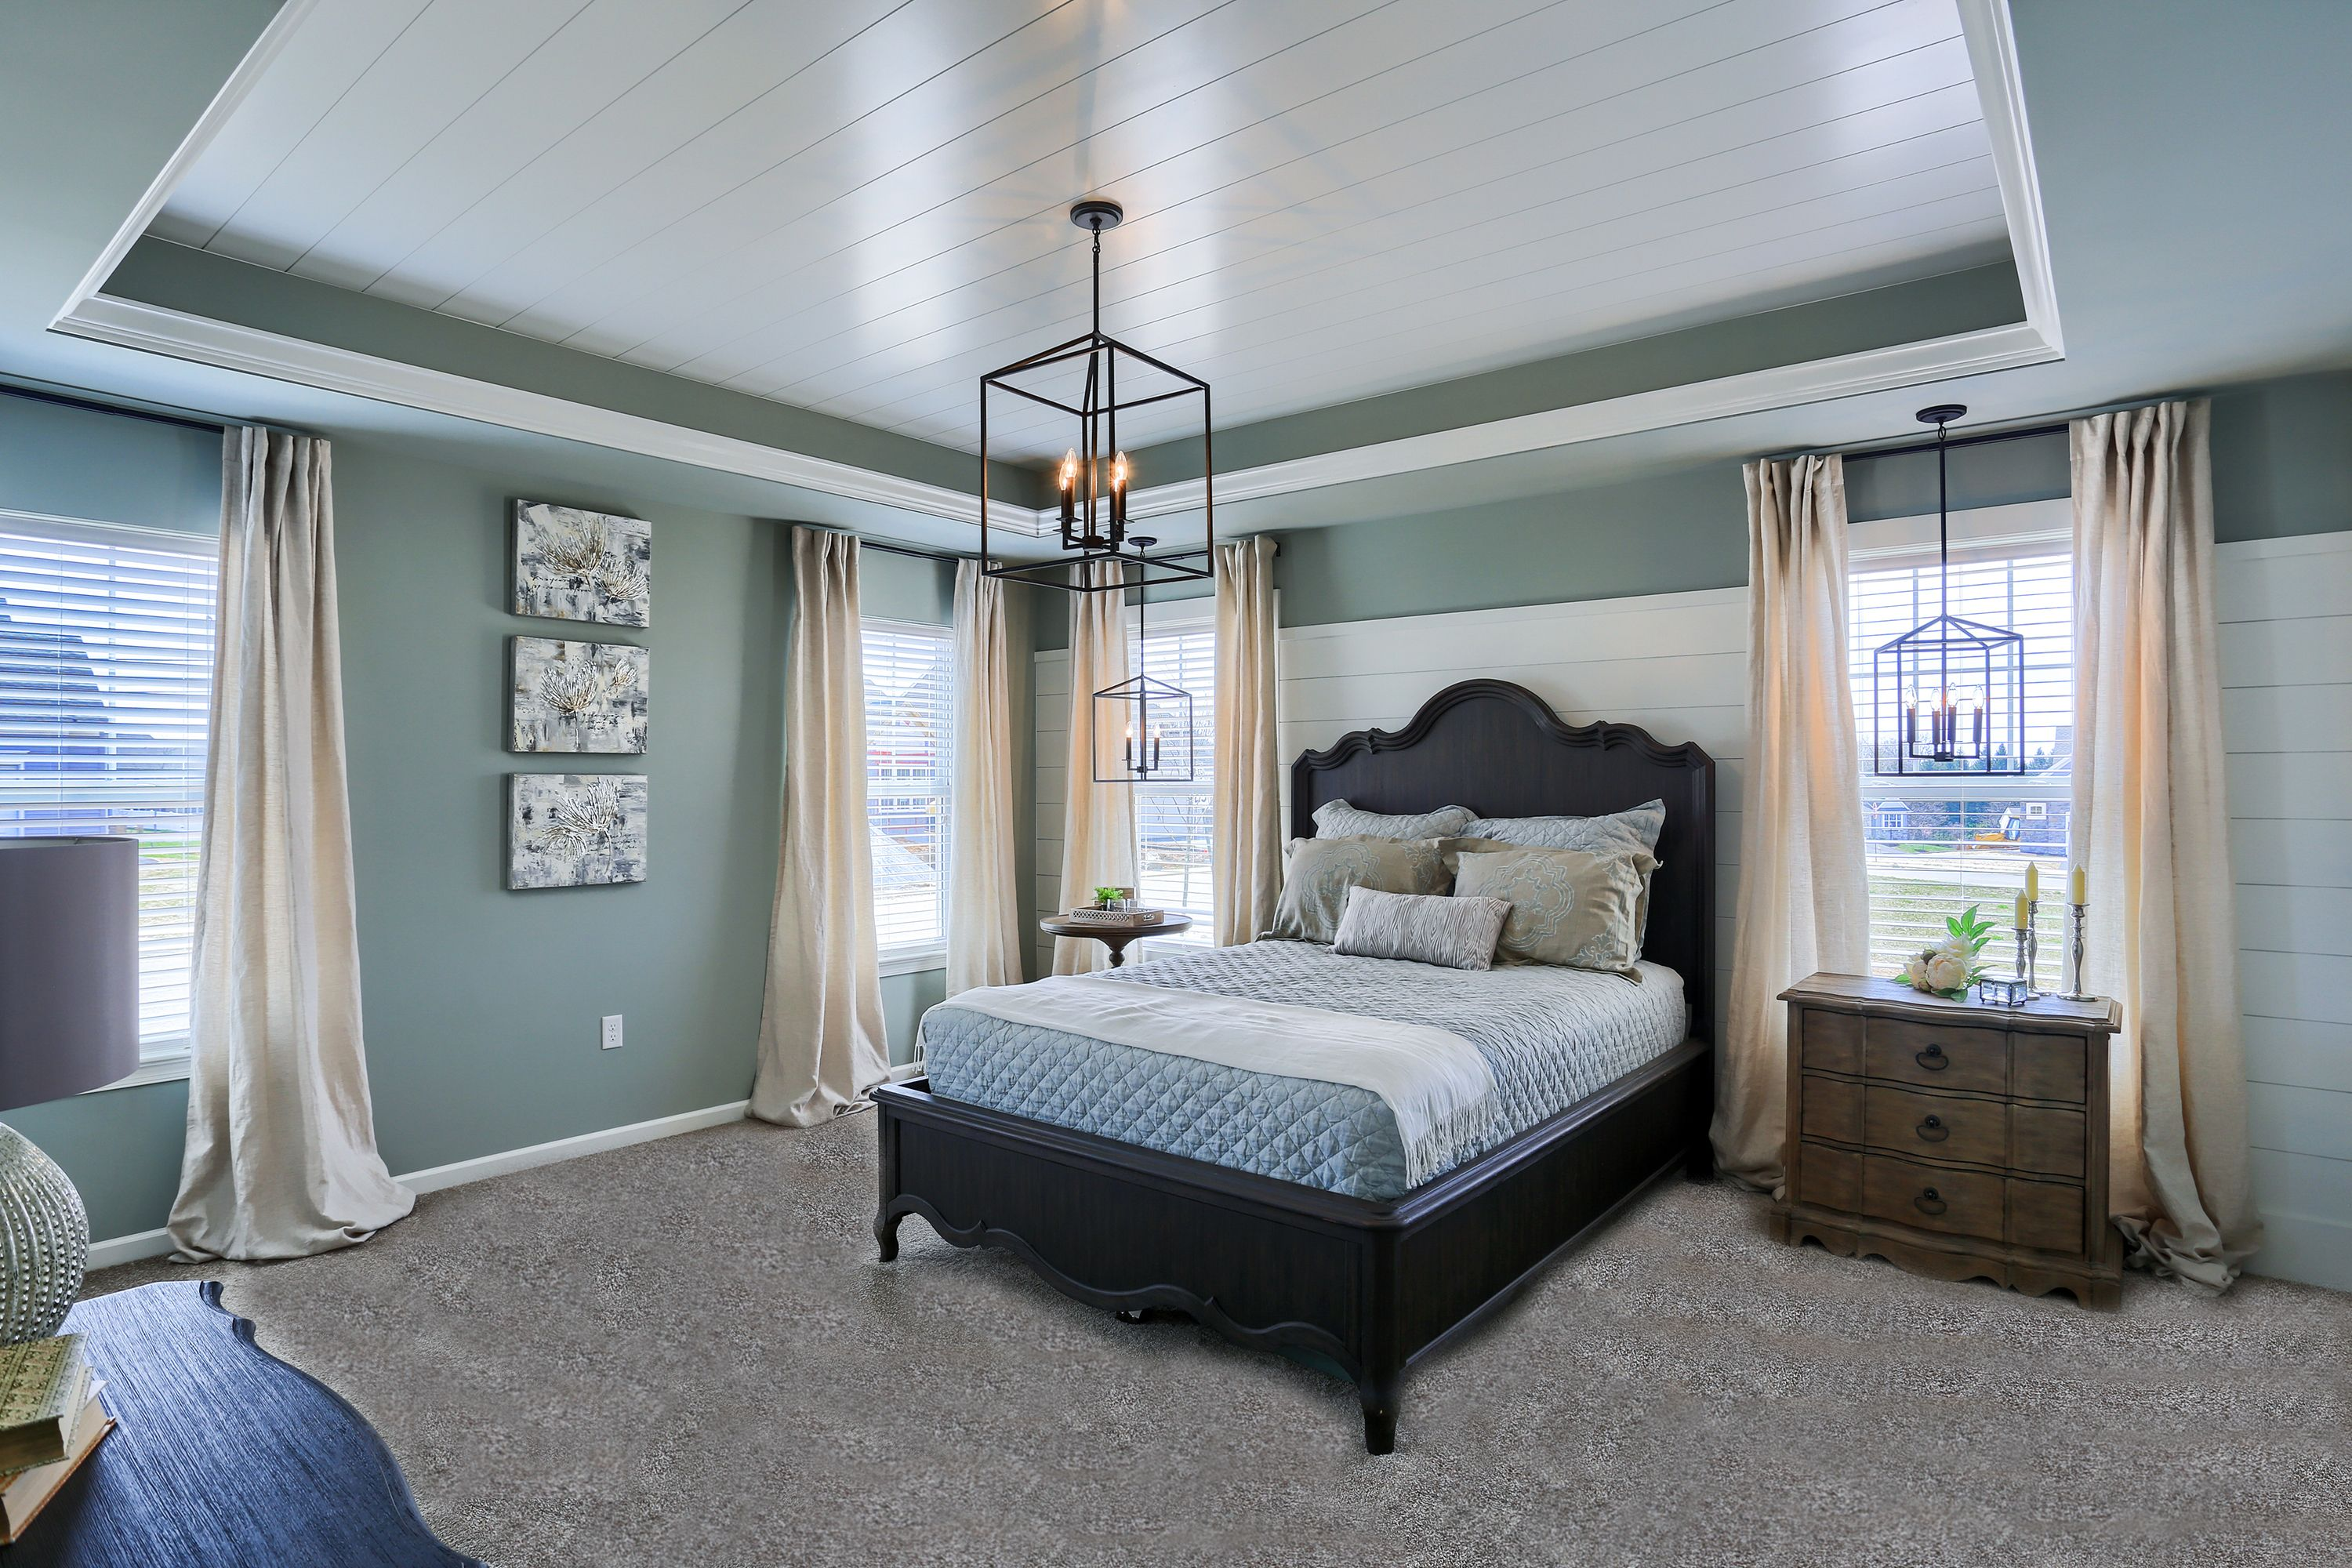 90 Degree Tray Ceiling With Shiplap Detail I1036b Ceiling Design Bedroom Tray Ceiling Home